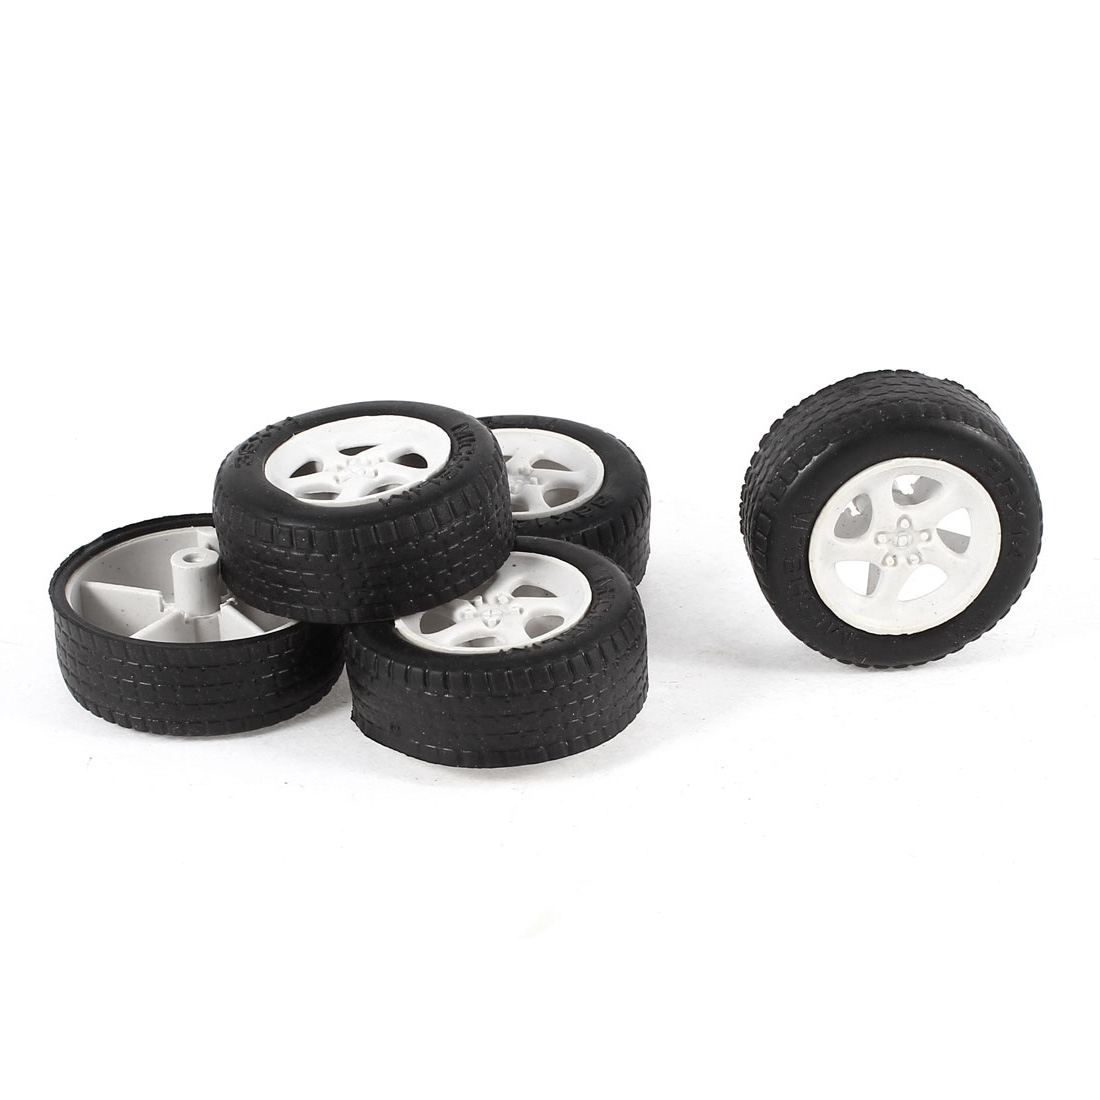 5 Pcs 36mm Dia Rubber Roll Plastic Spoke Car Auto Model Toys Wheels Black White